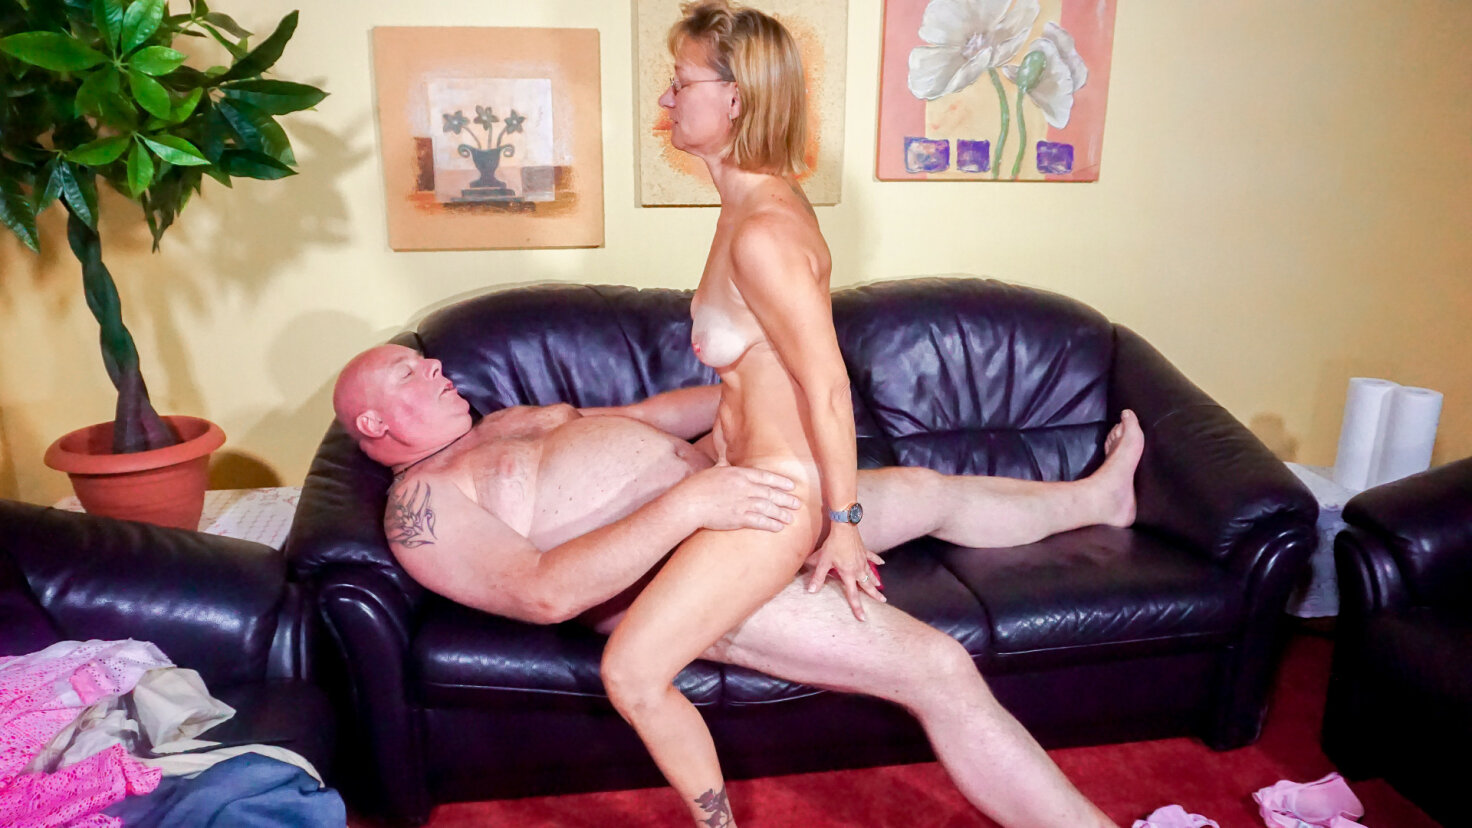 German granny is a blonde cheating slut who sucks a cock before wild ride